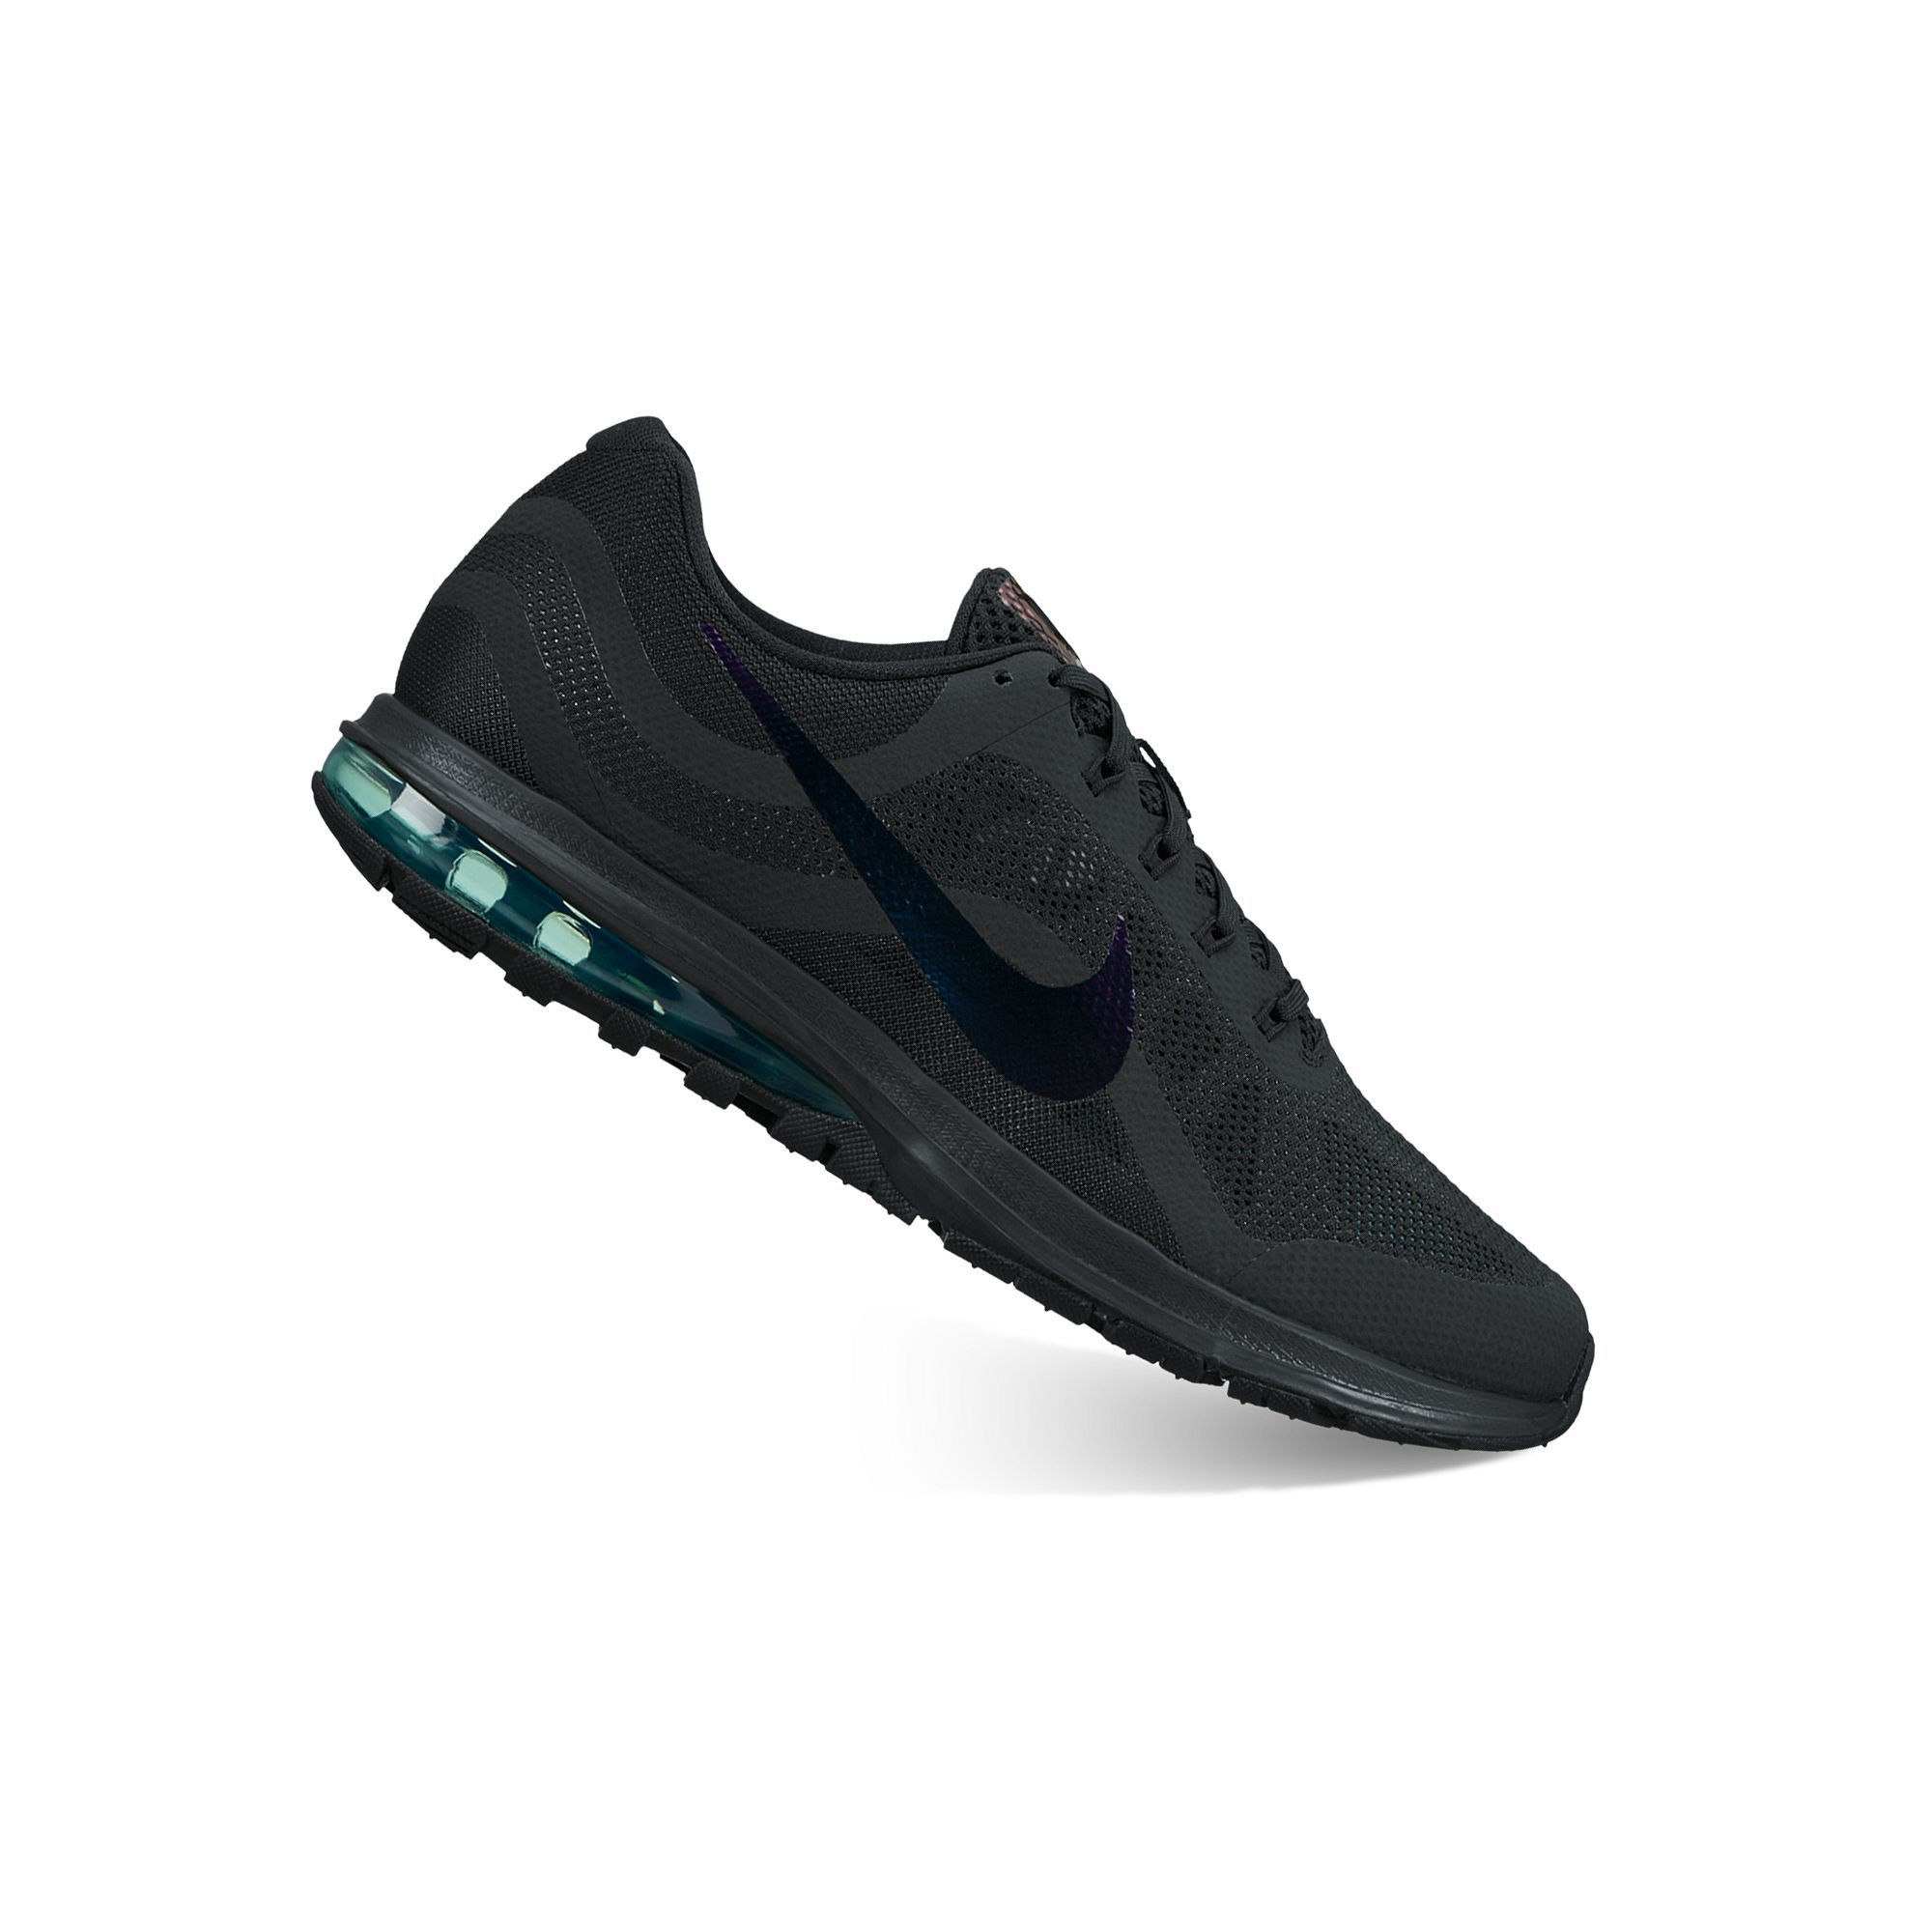 8e4627ec06413 Nike Air Max Dynasty 2 BTS Men's Running Shoes | Products | Nike air ...